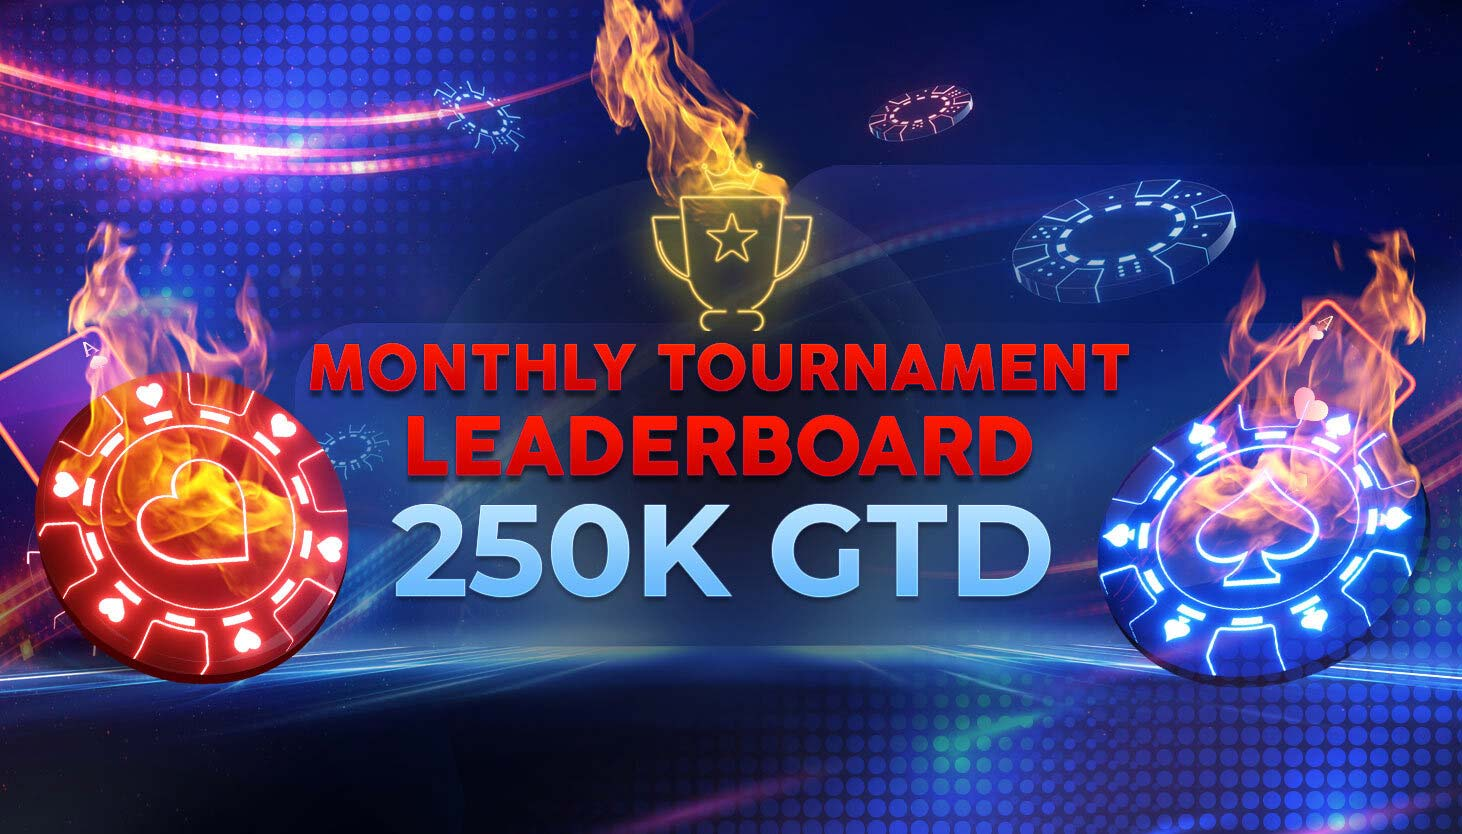 Monthly Tournament Leaderboard